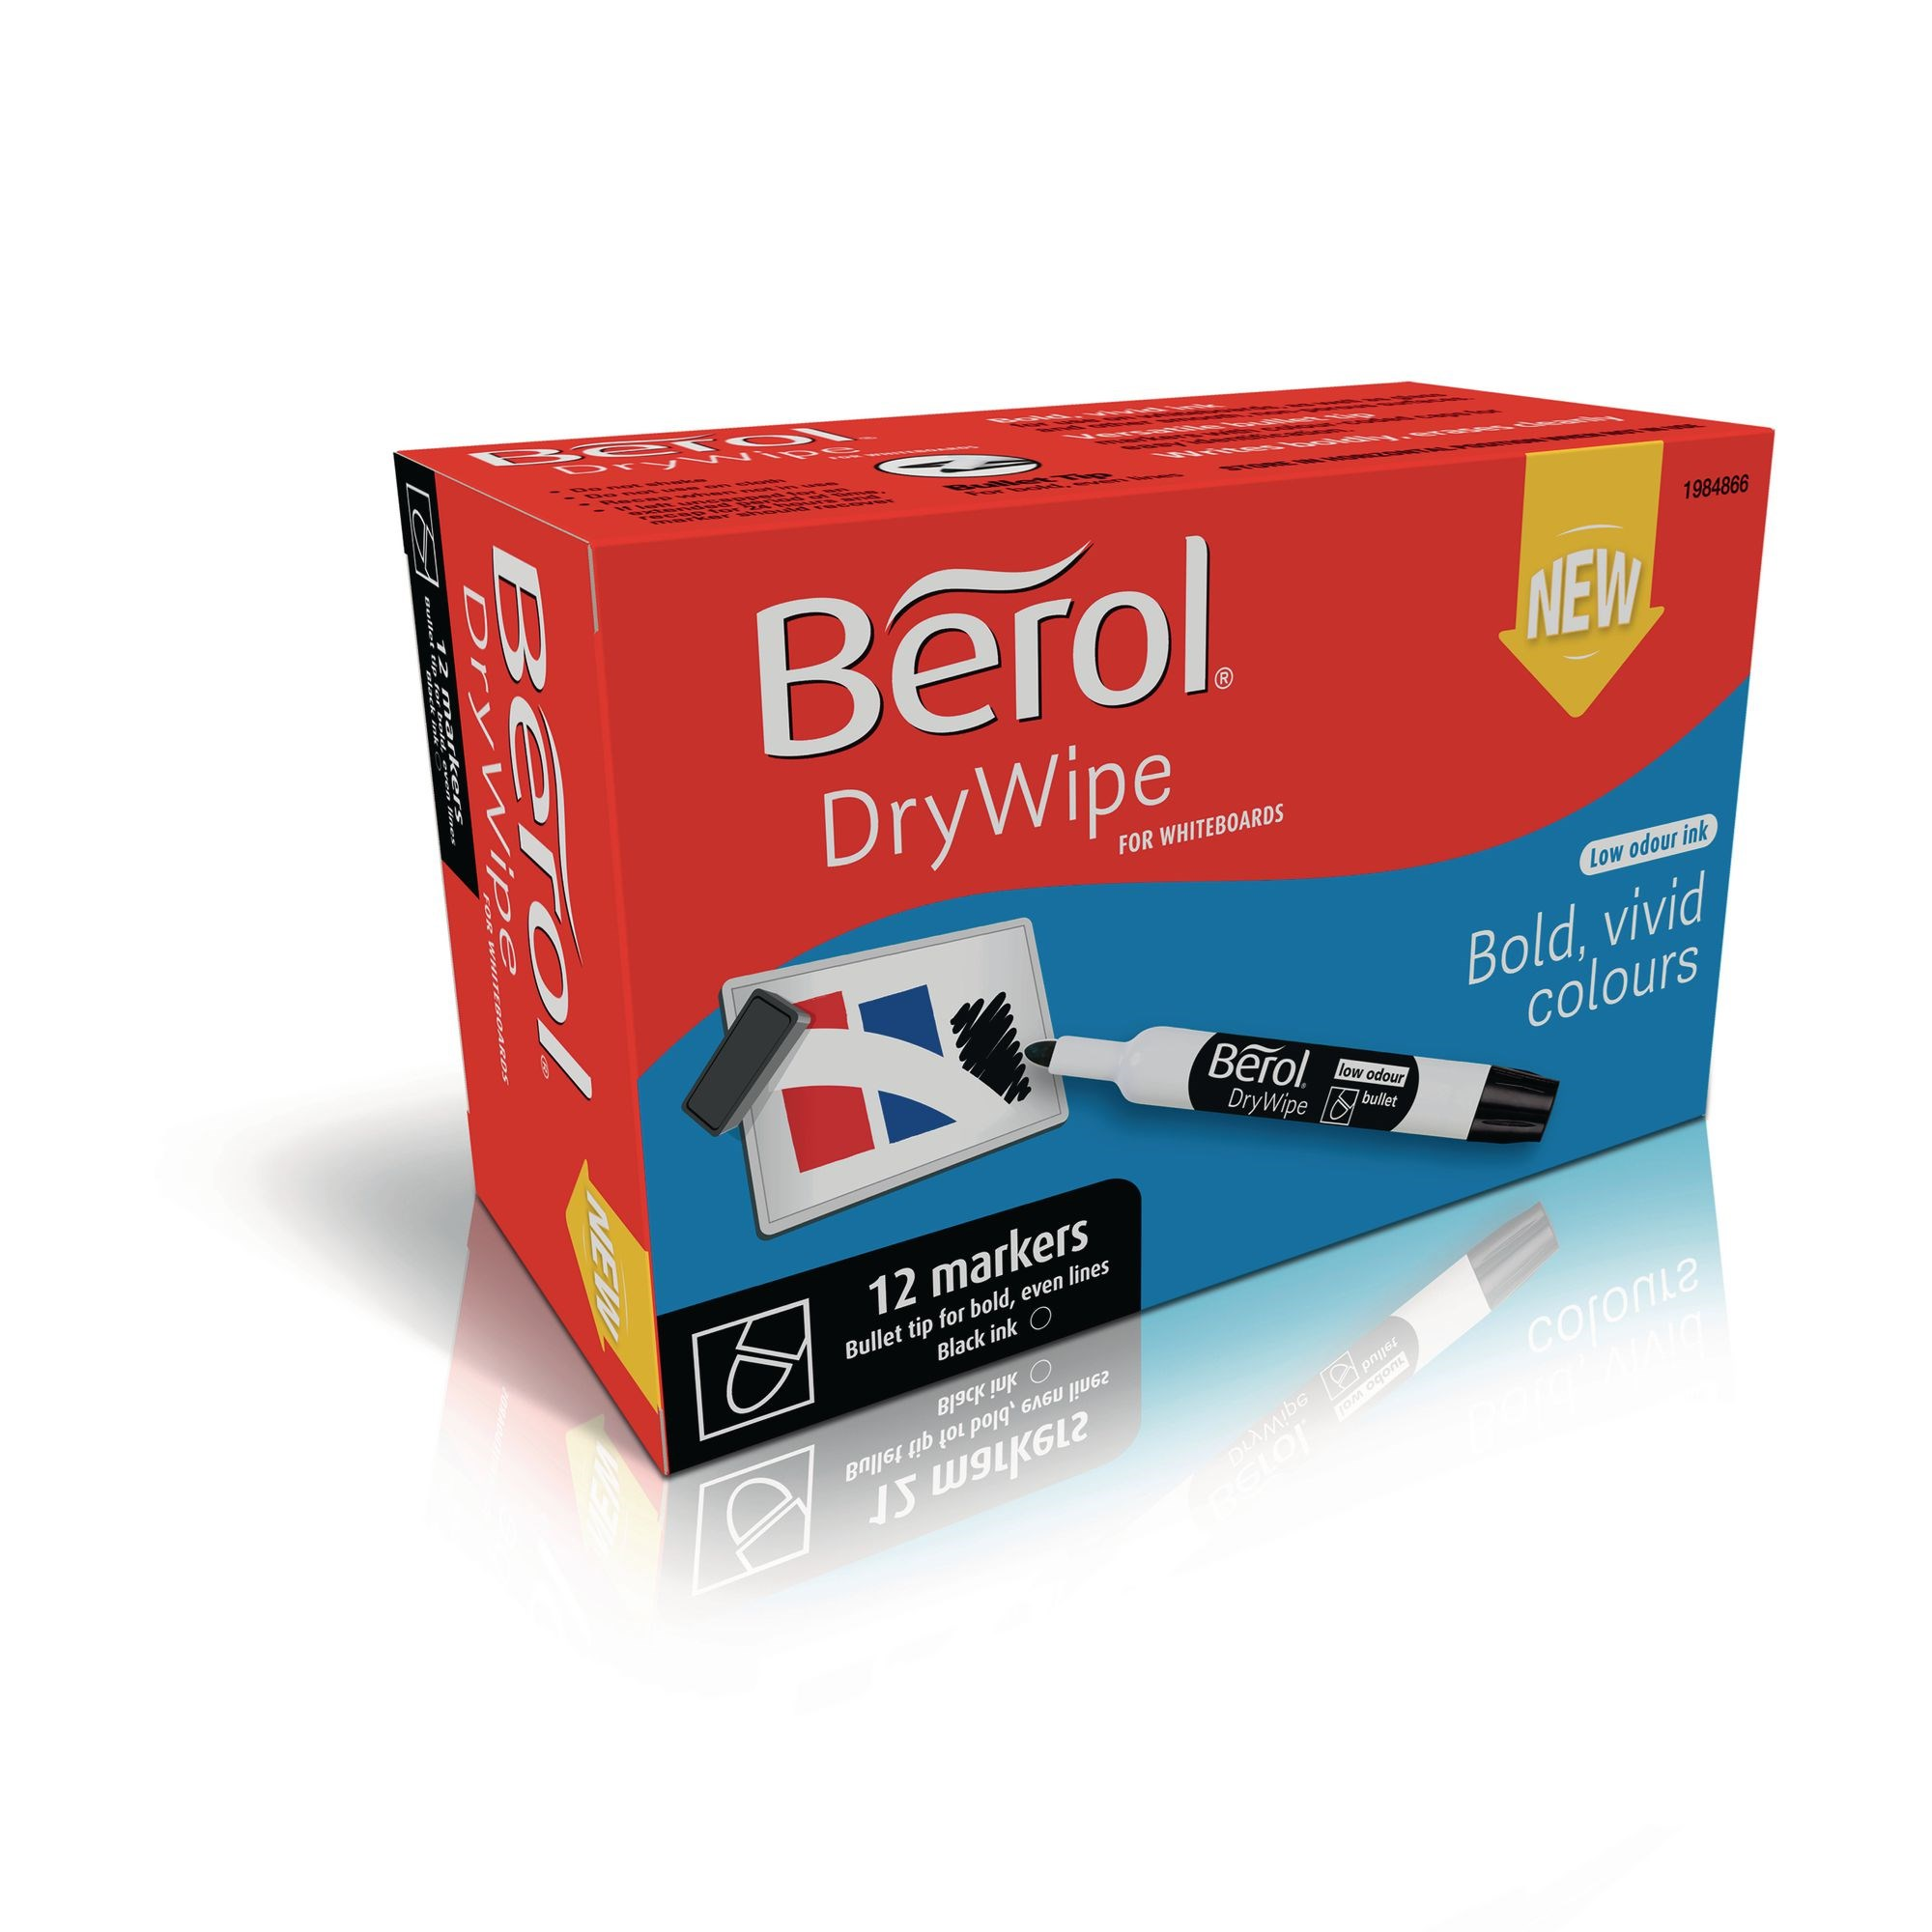 Berol Whiteboard Marker Black, Bullet Tip - Pack of 12